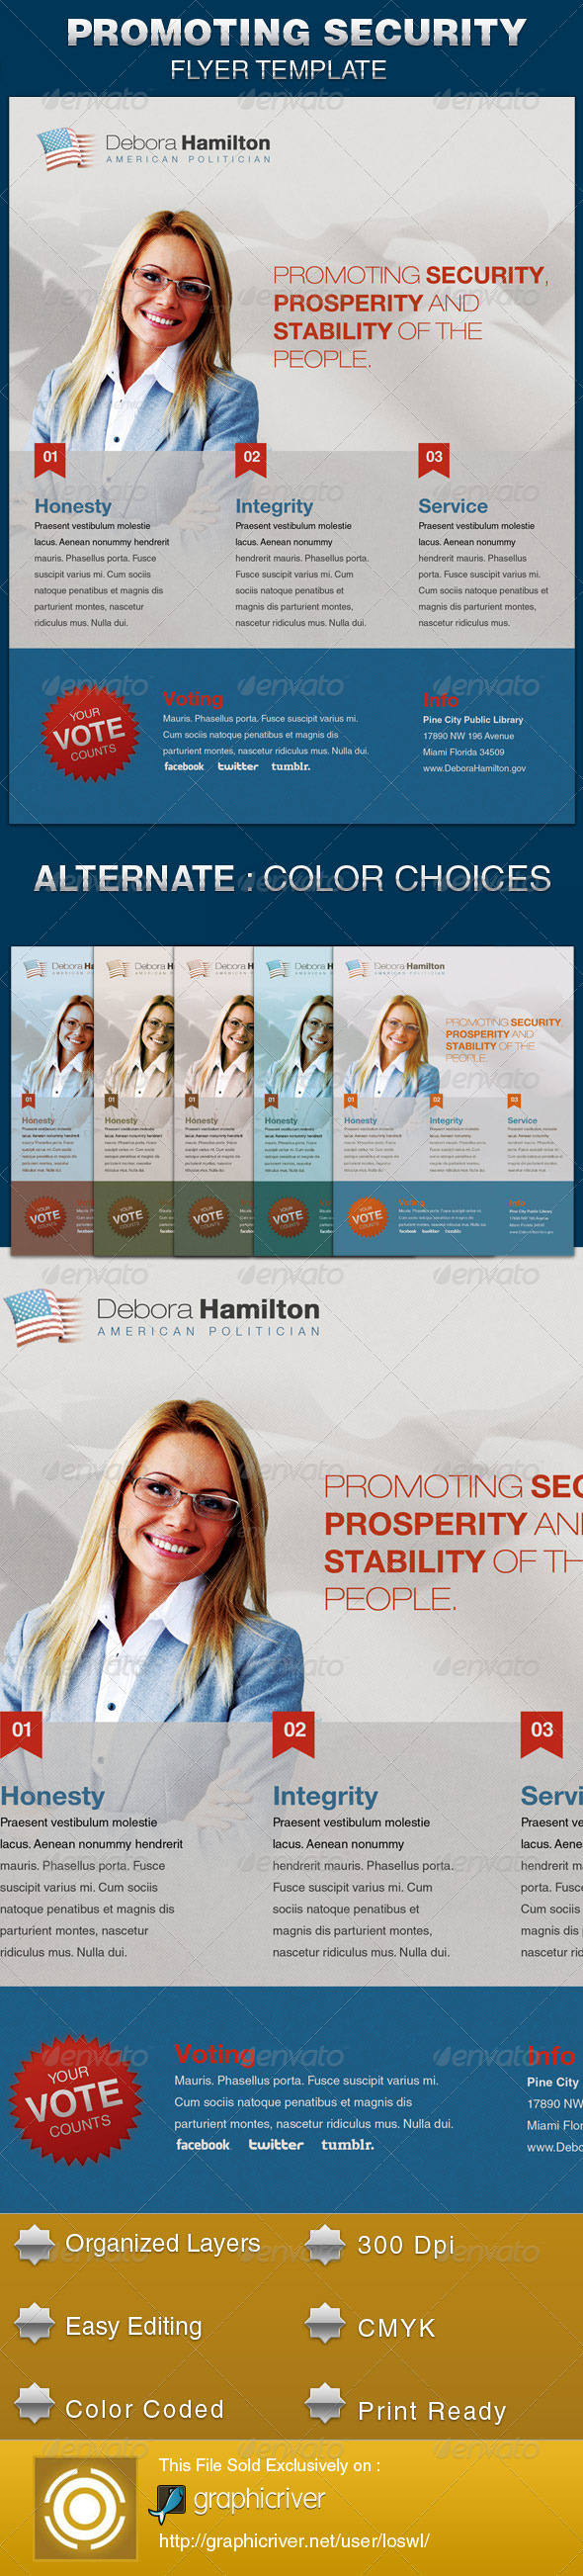 GraphicRiver Promoting Security Political Flyer Template 5519748